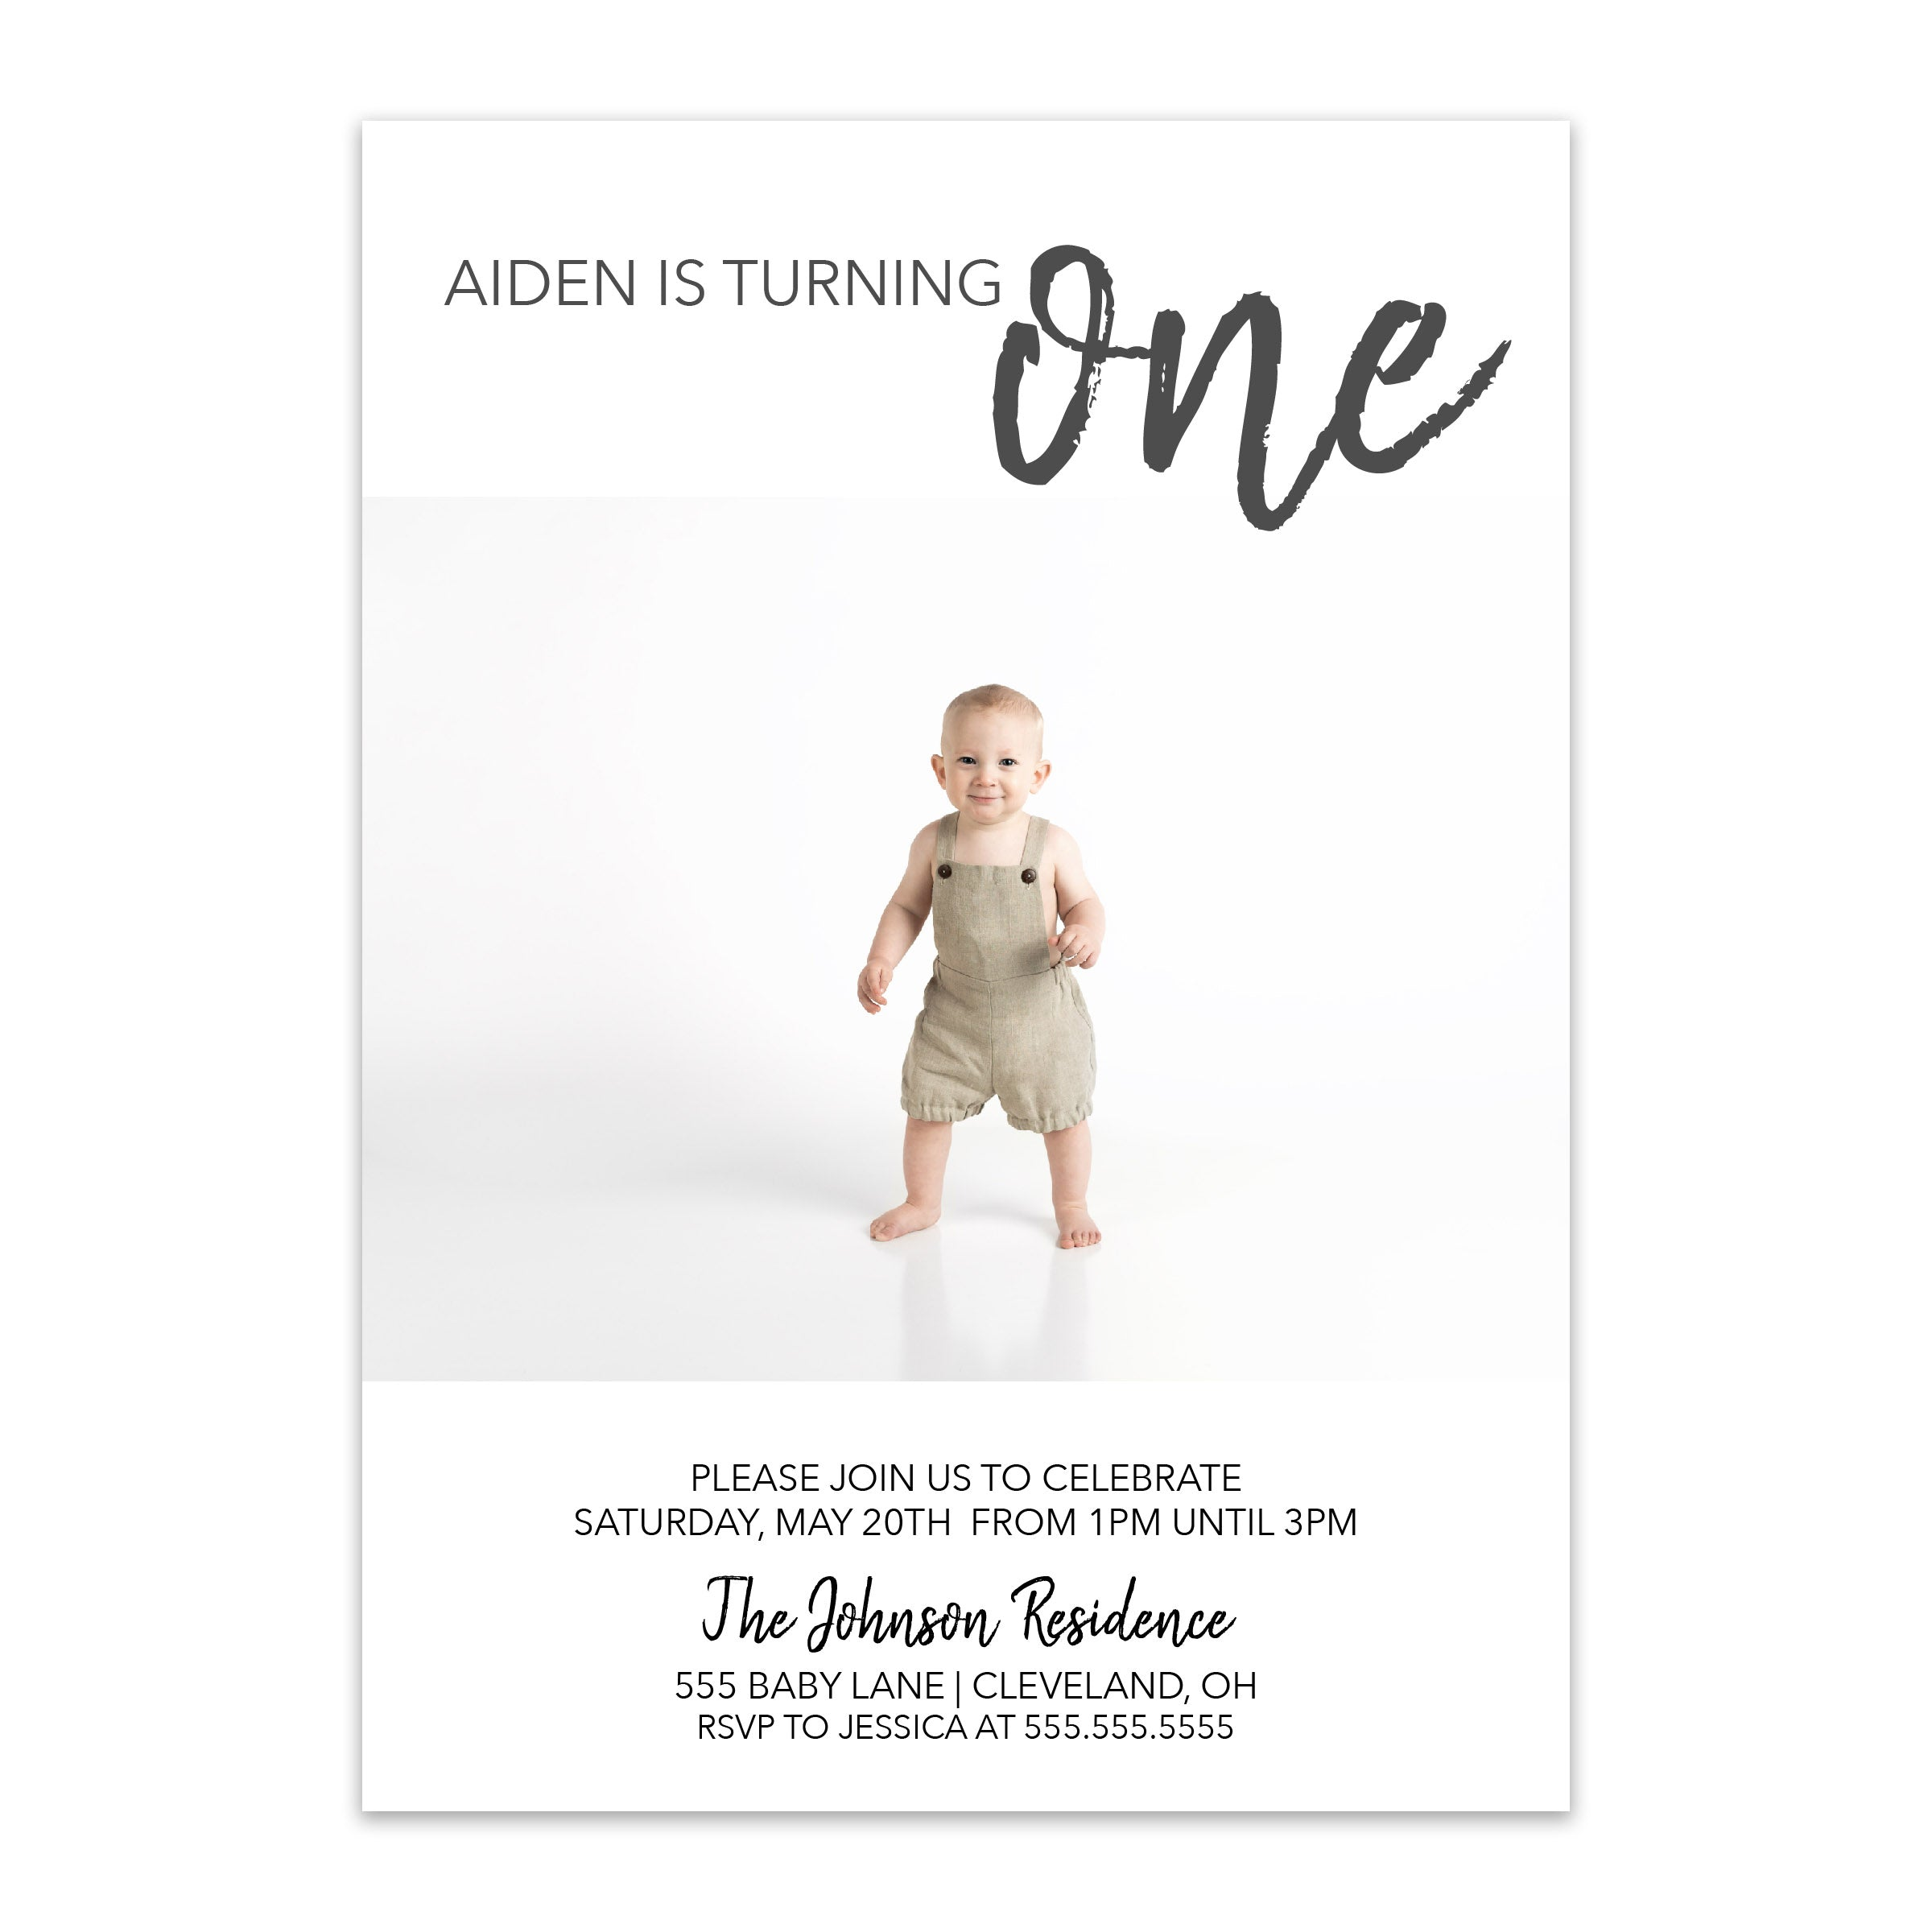 Minimalist Baby Photo Birthday Invitation - Blú Rose Designs